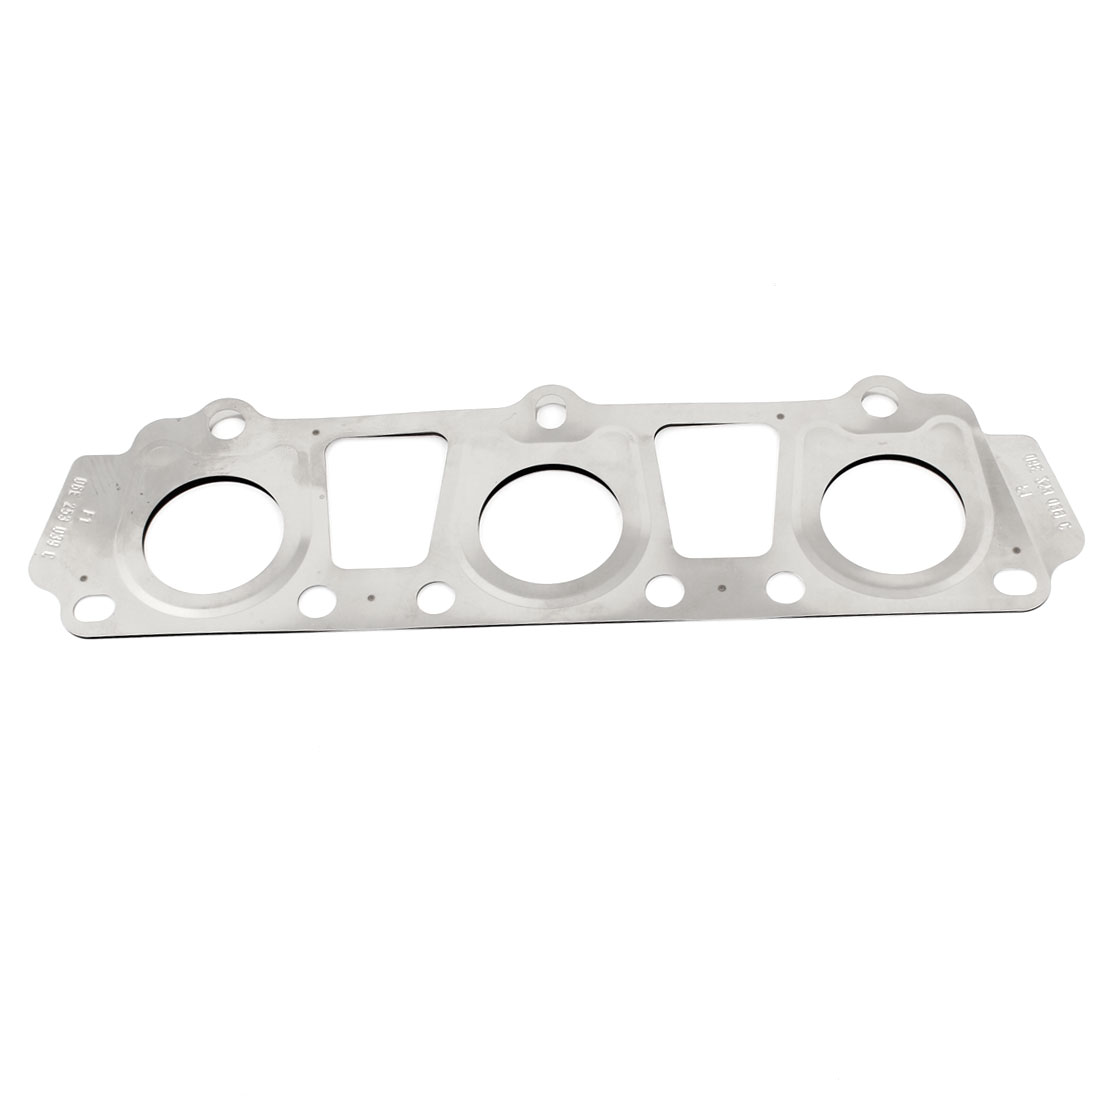 06E 253 039 Auto Car Engine Exhaust Manifold Gasket Repairing Part